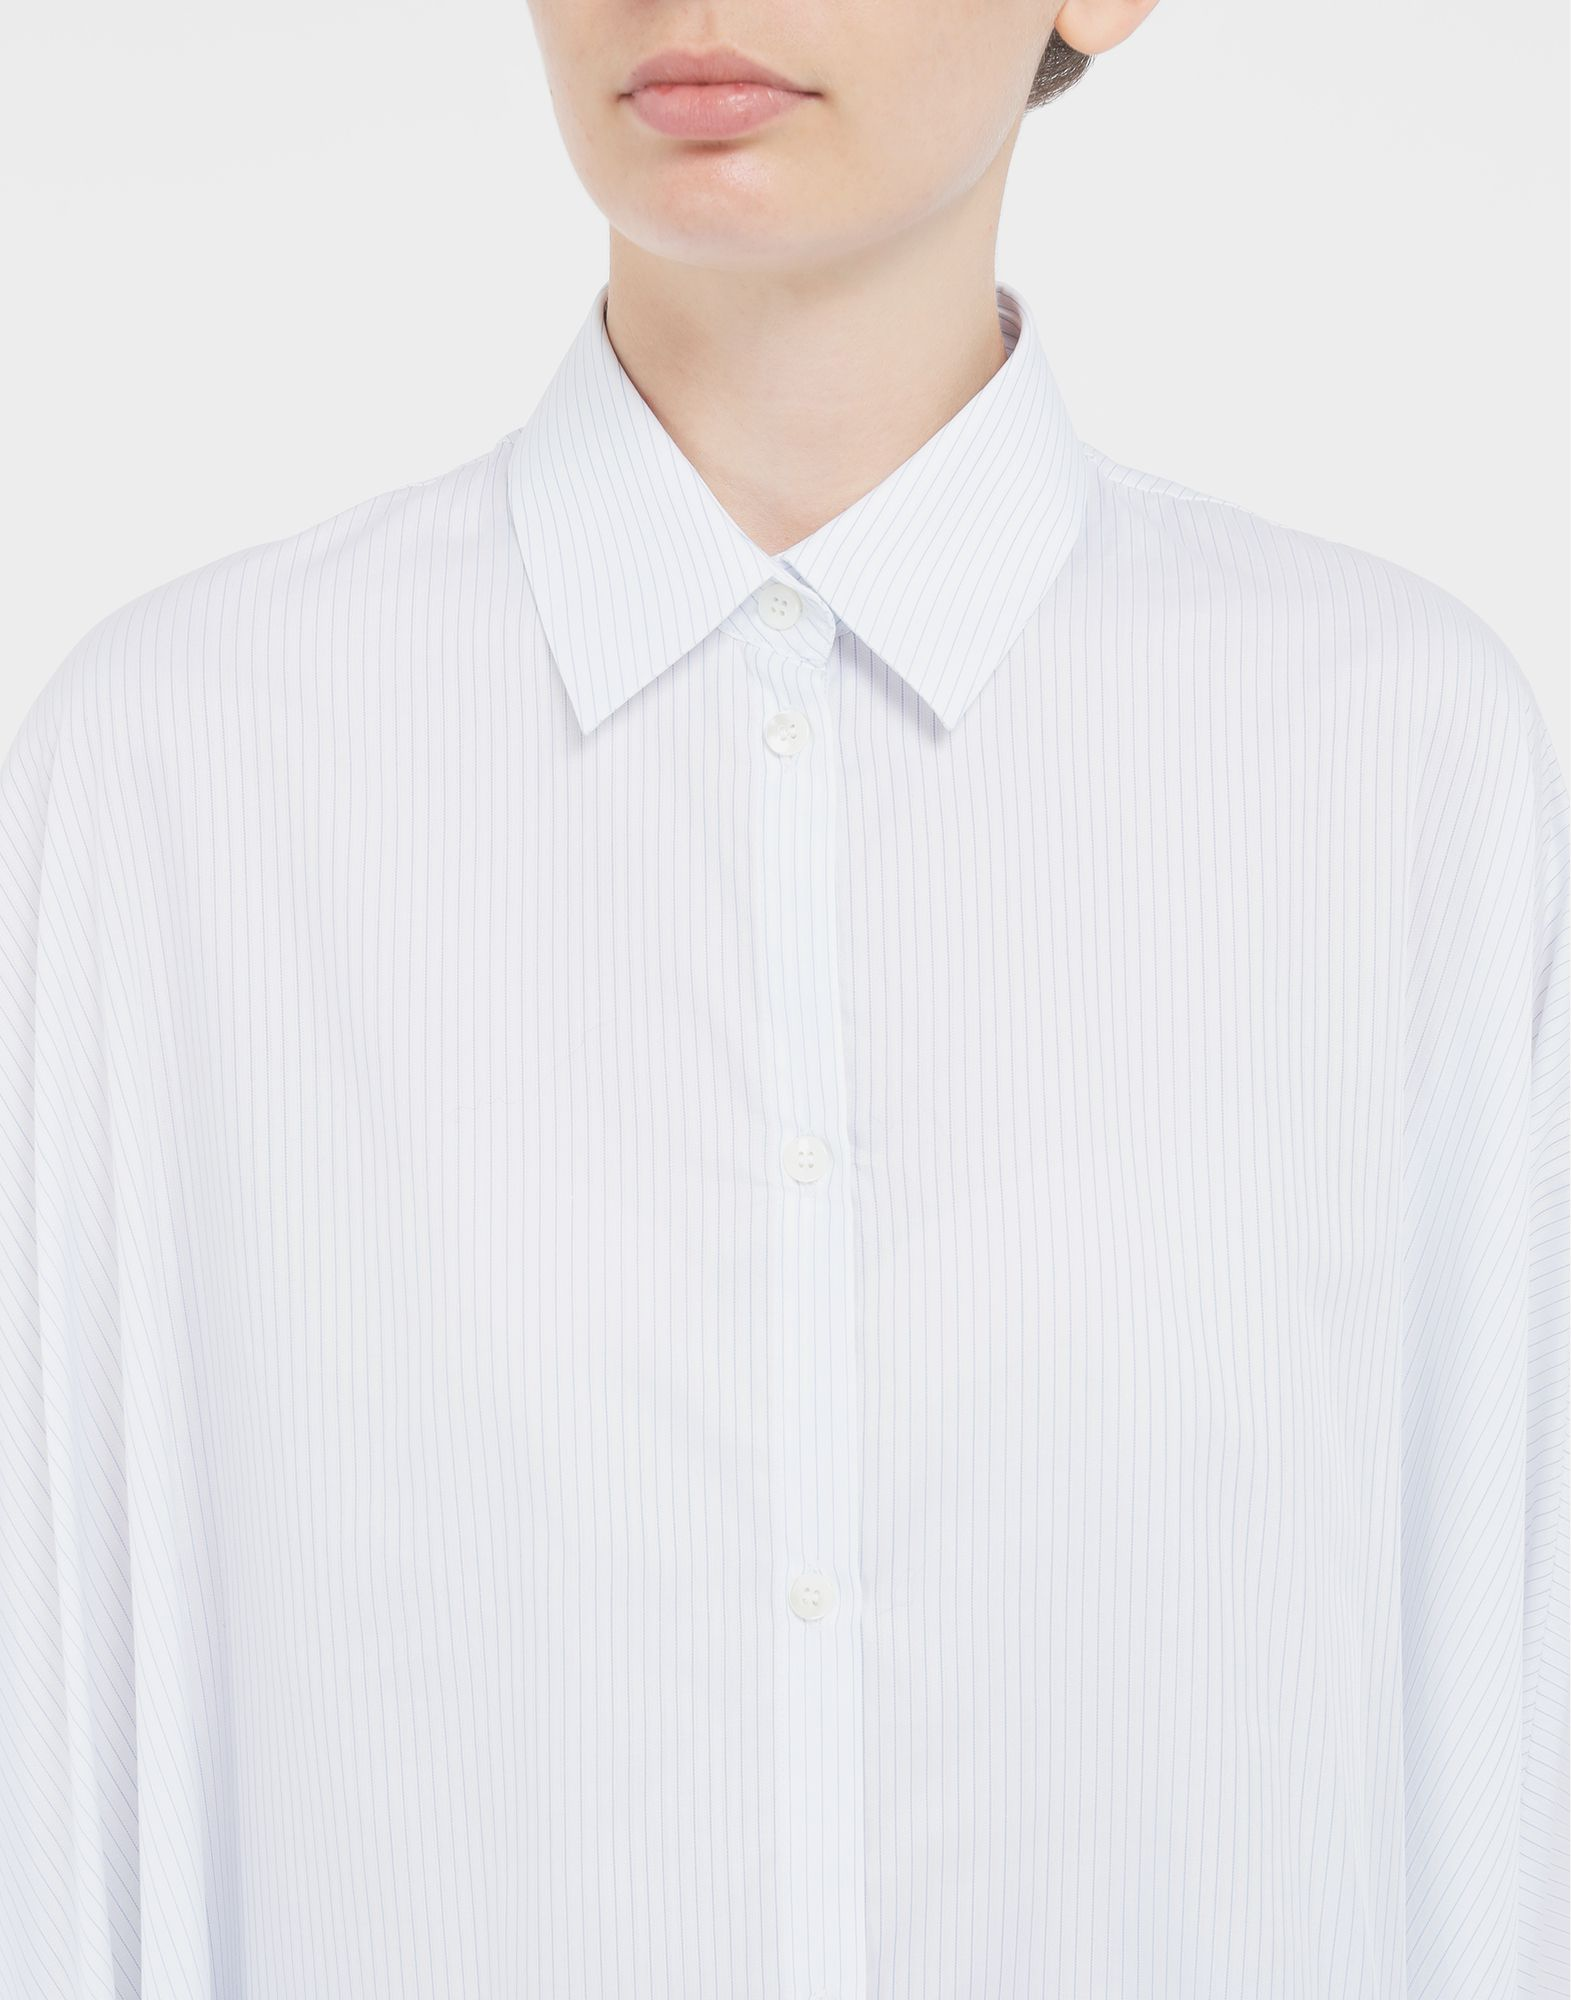 MAISON MARGIELA Pinstripe asymmetric shirt Long sleeve shirt Woman a